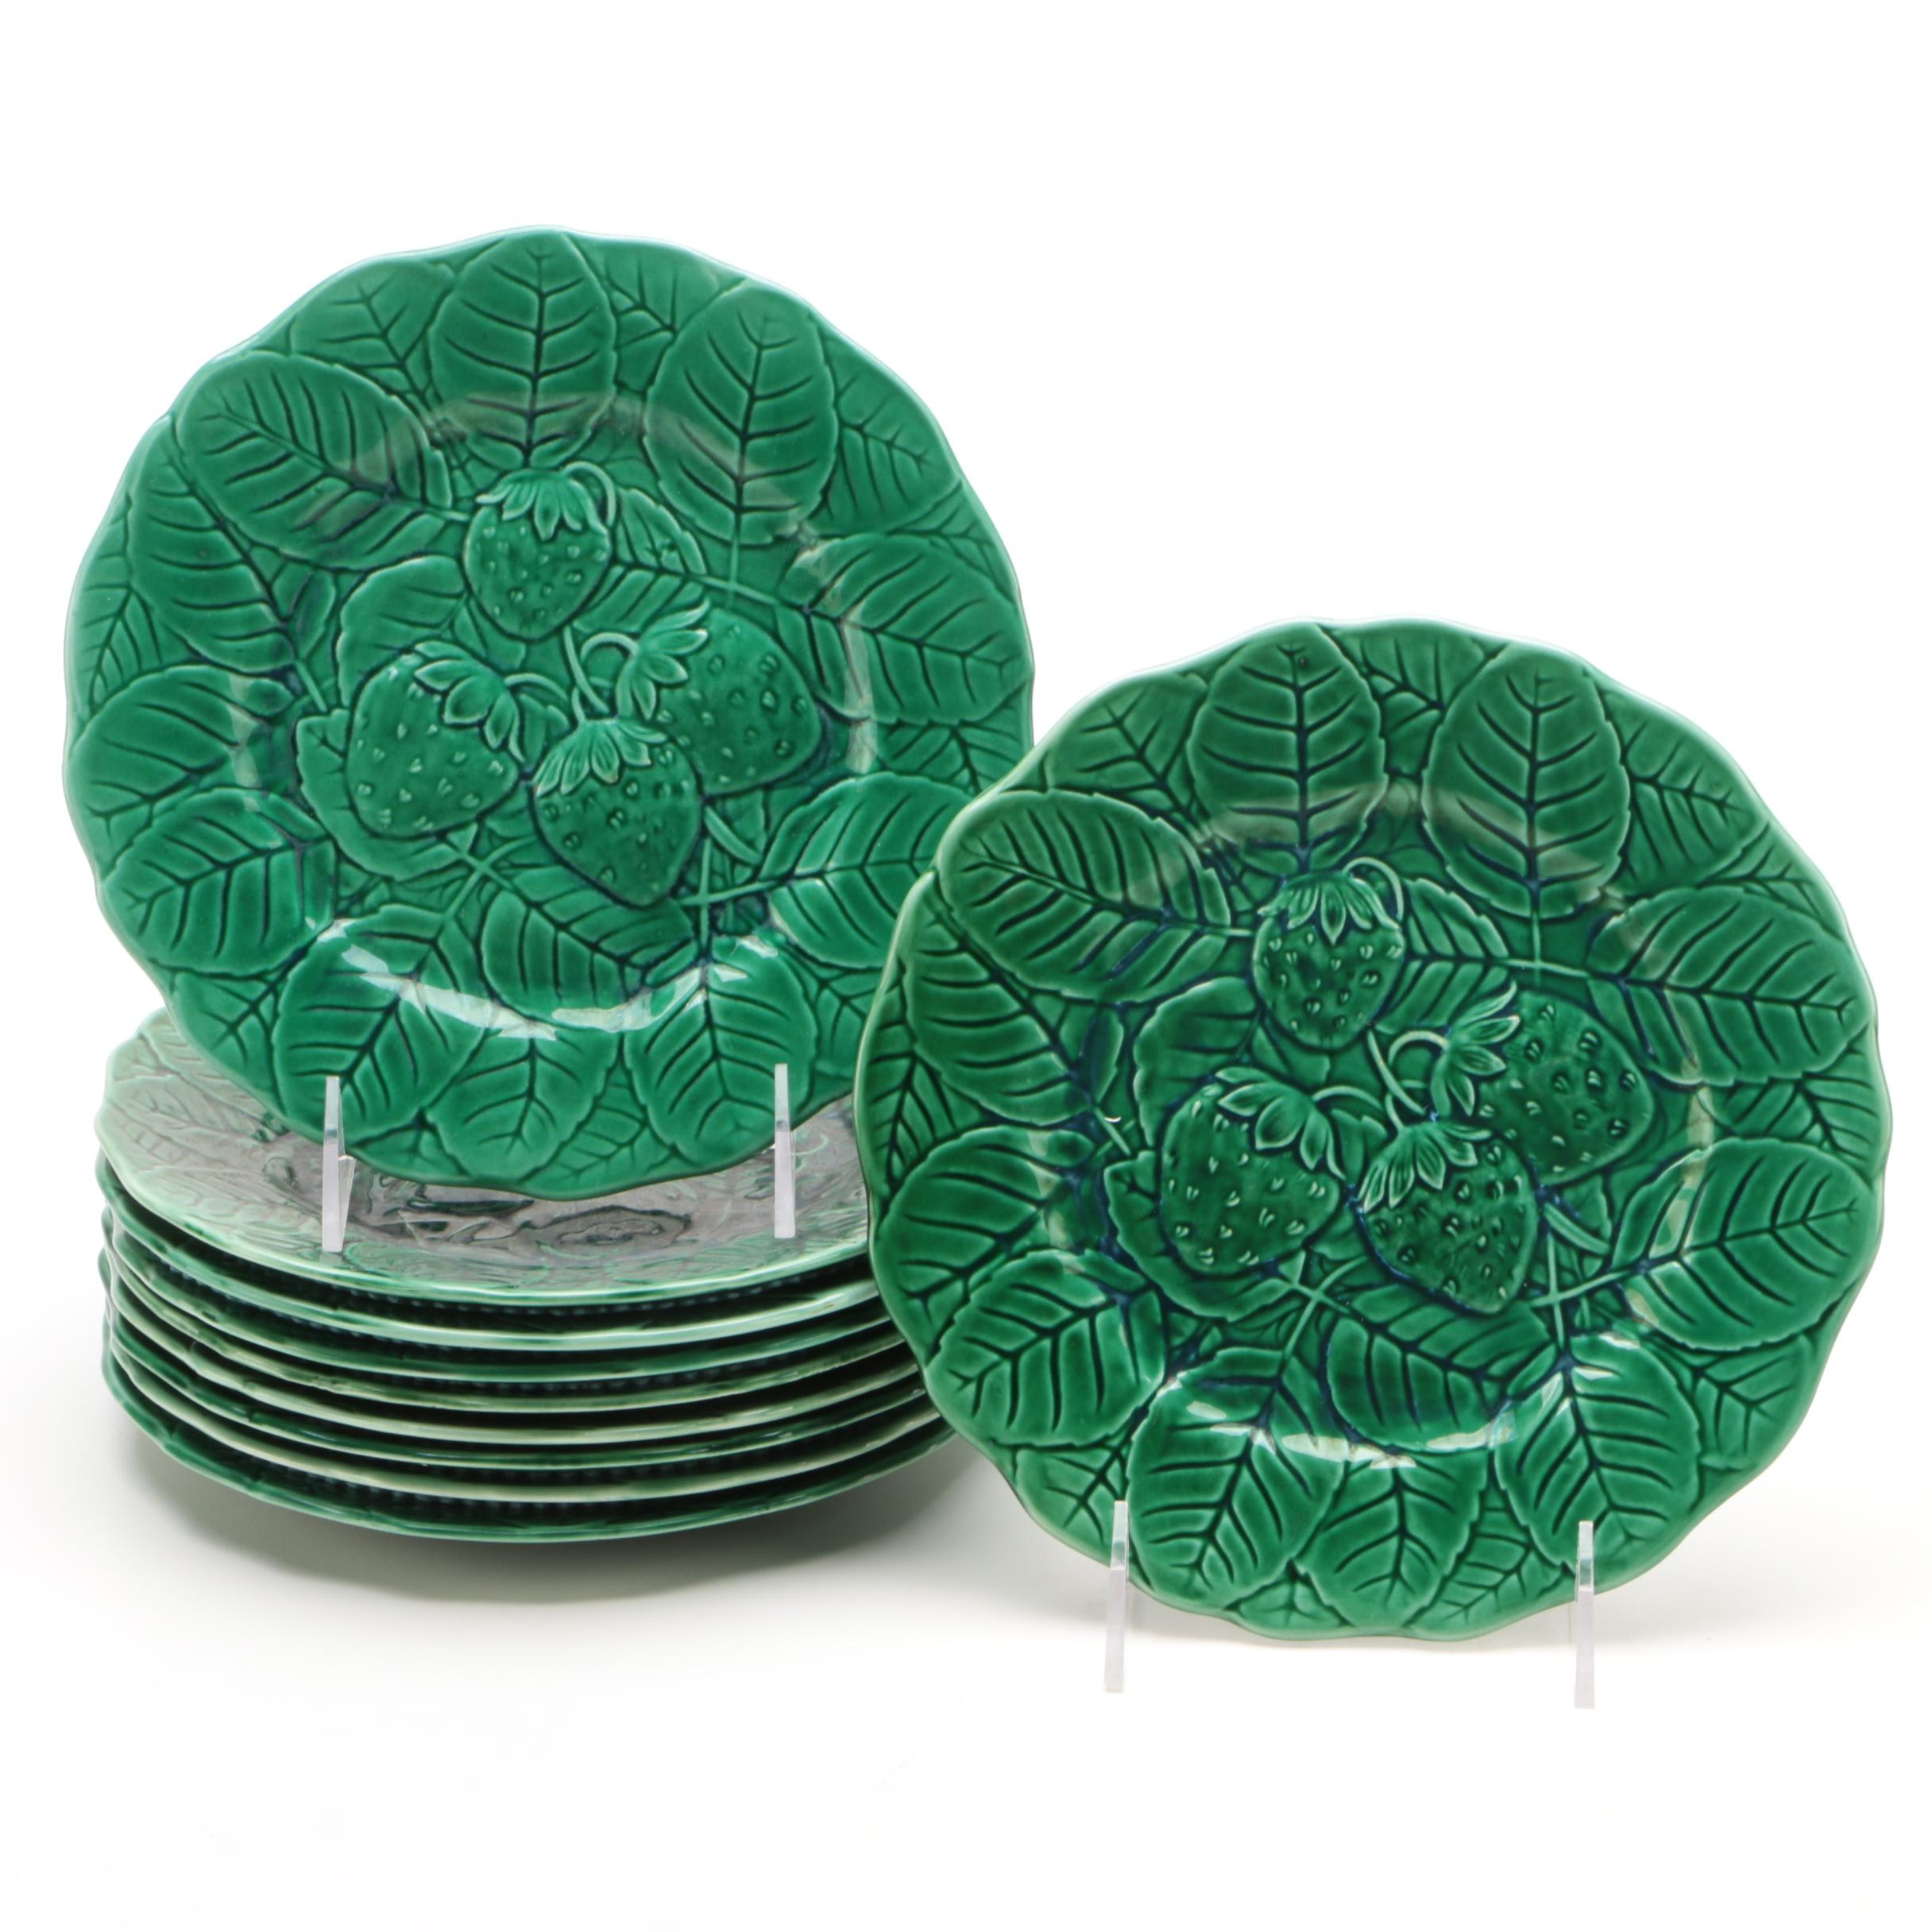 Spanish Fondeville Green Majolica Salad Plates with Strawberry Motif